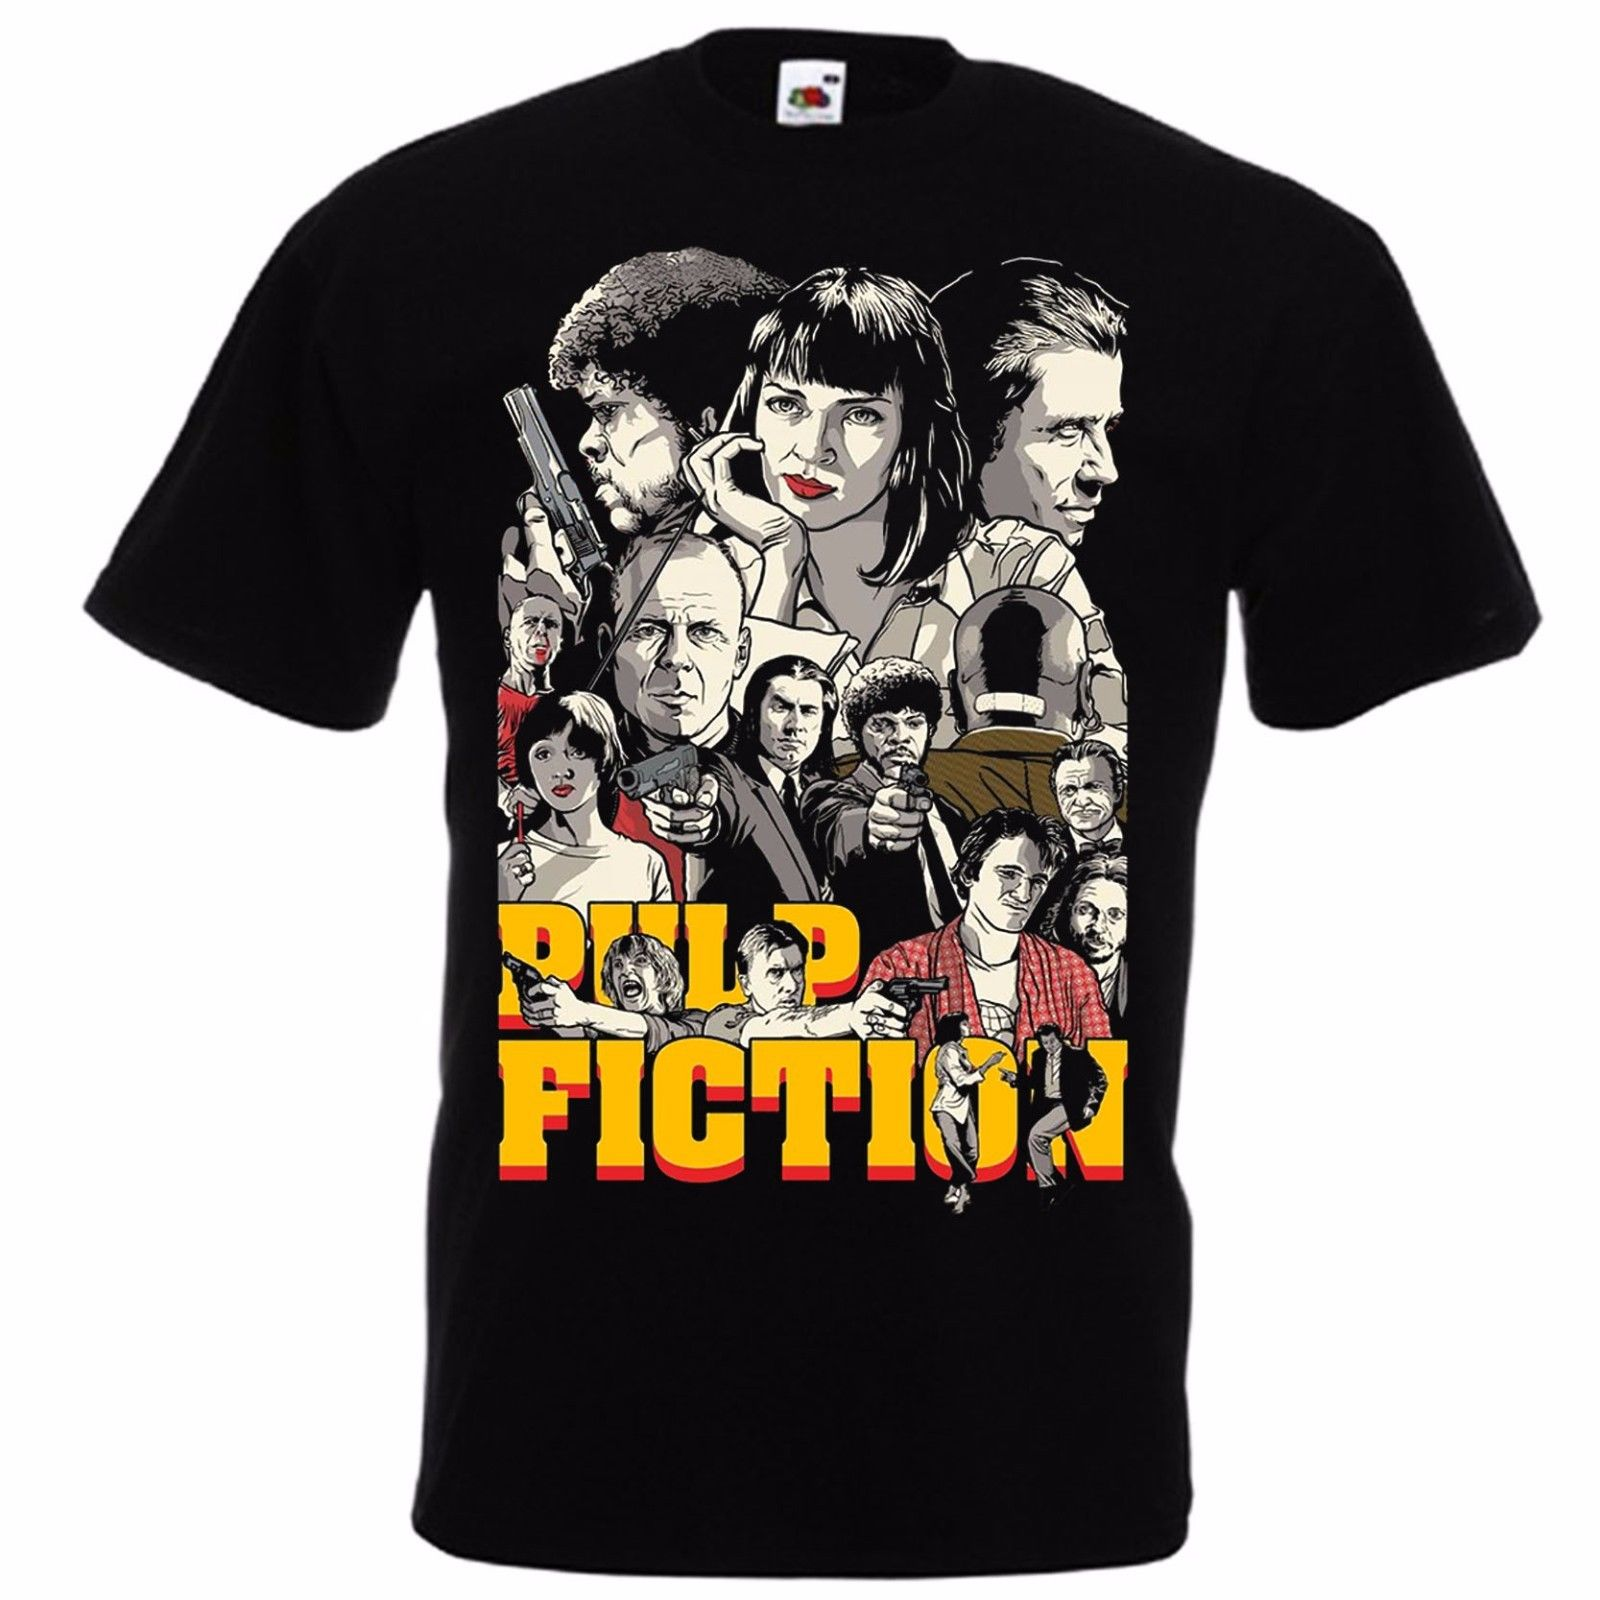 pulp-fiction-by-quentin-font-b-tarantino-b-font-john-travolta-samuel-jackson-uma-thurman